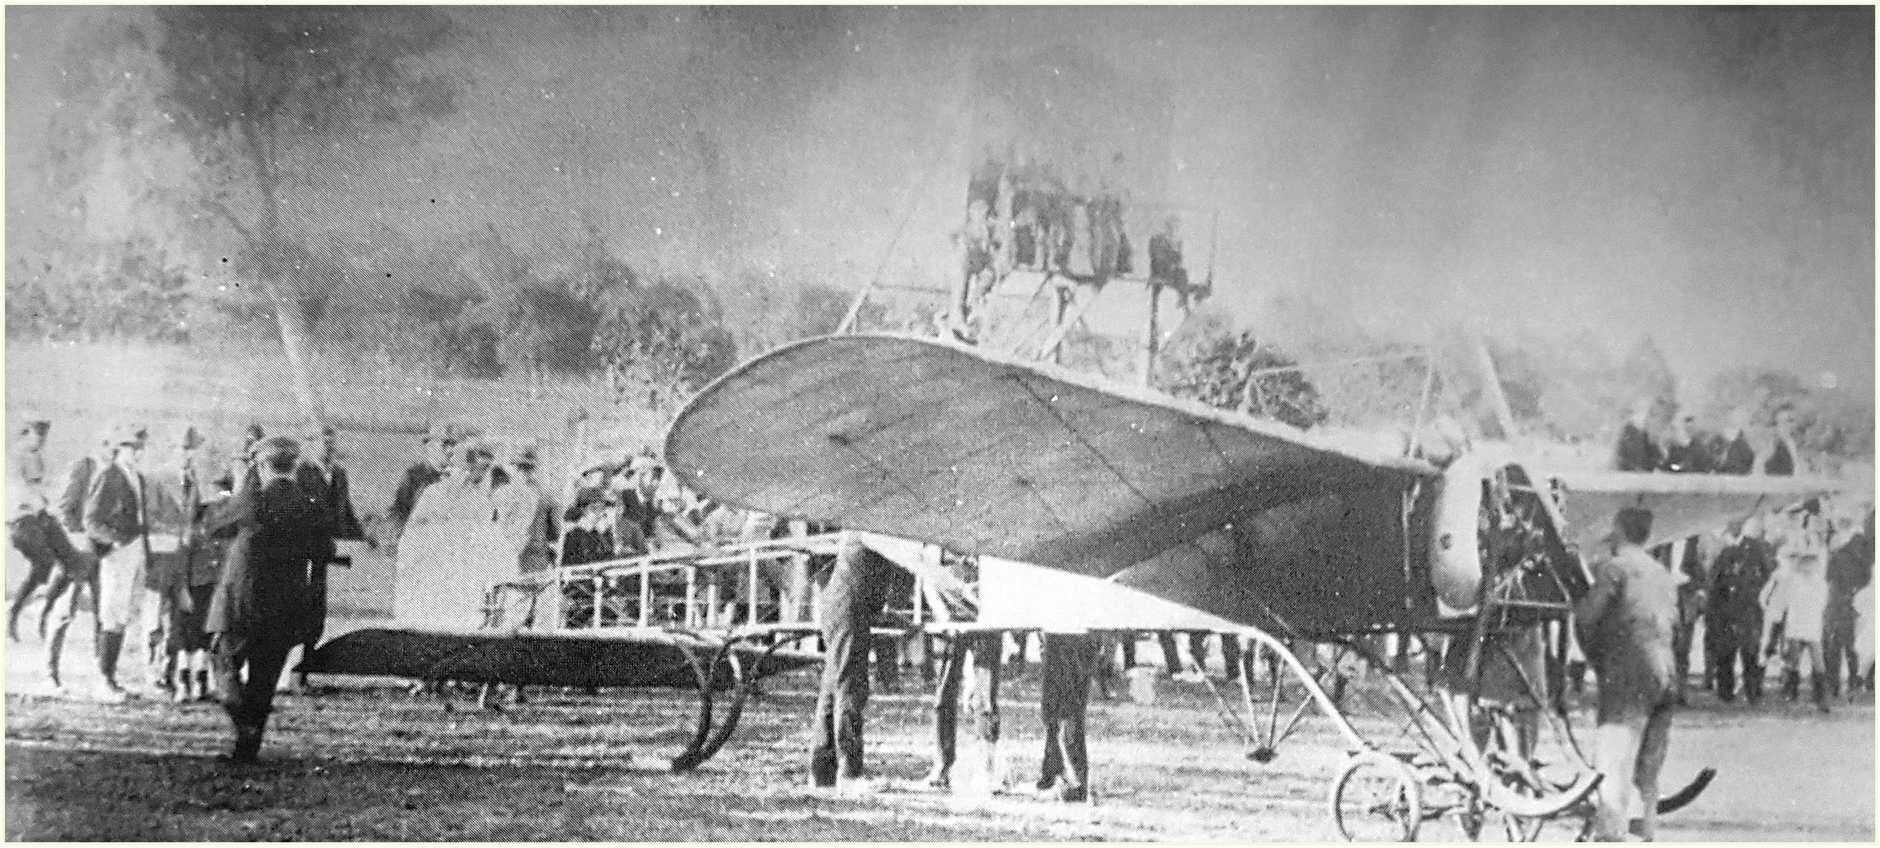 A.B. Stone's Bleriot monoplane which raced a car at Callaghan Park on 1912.